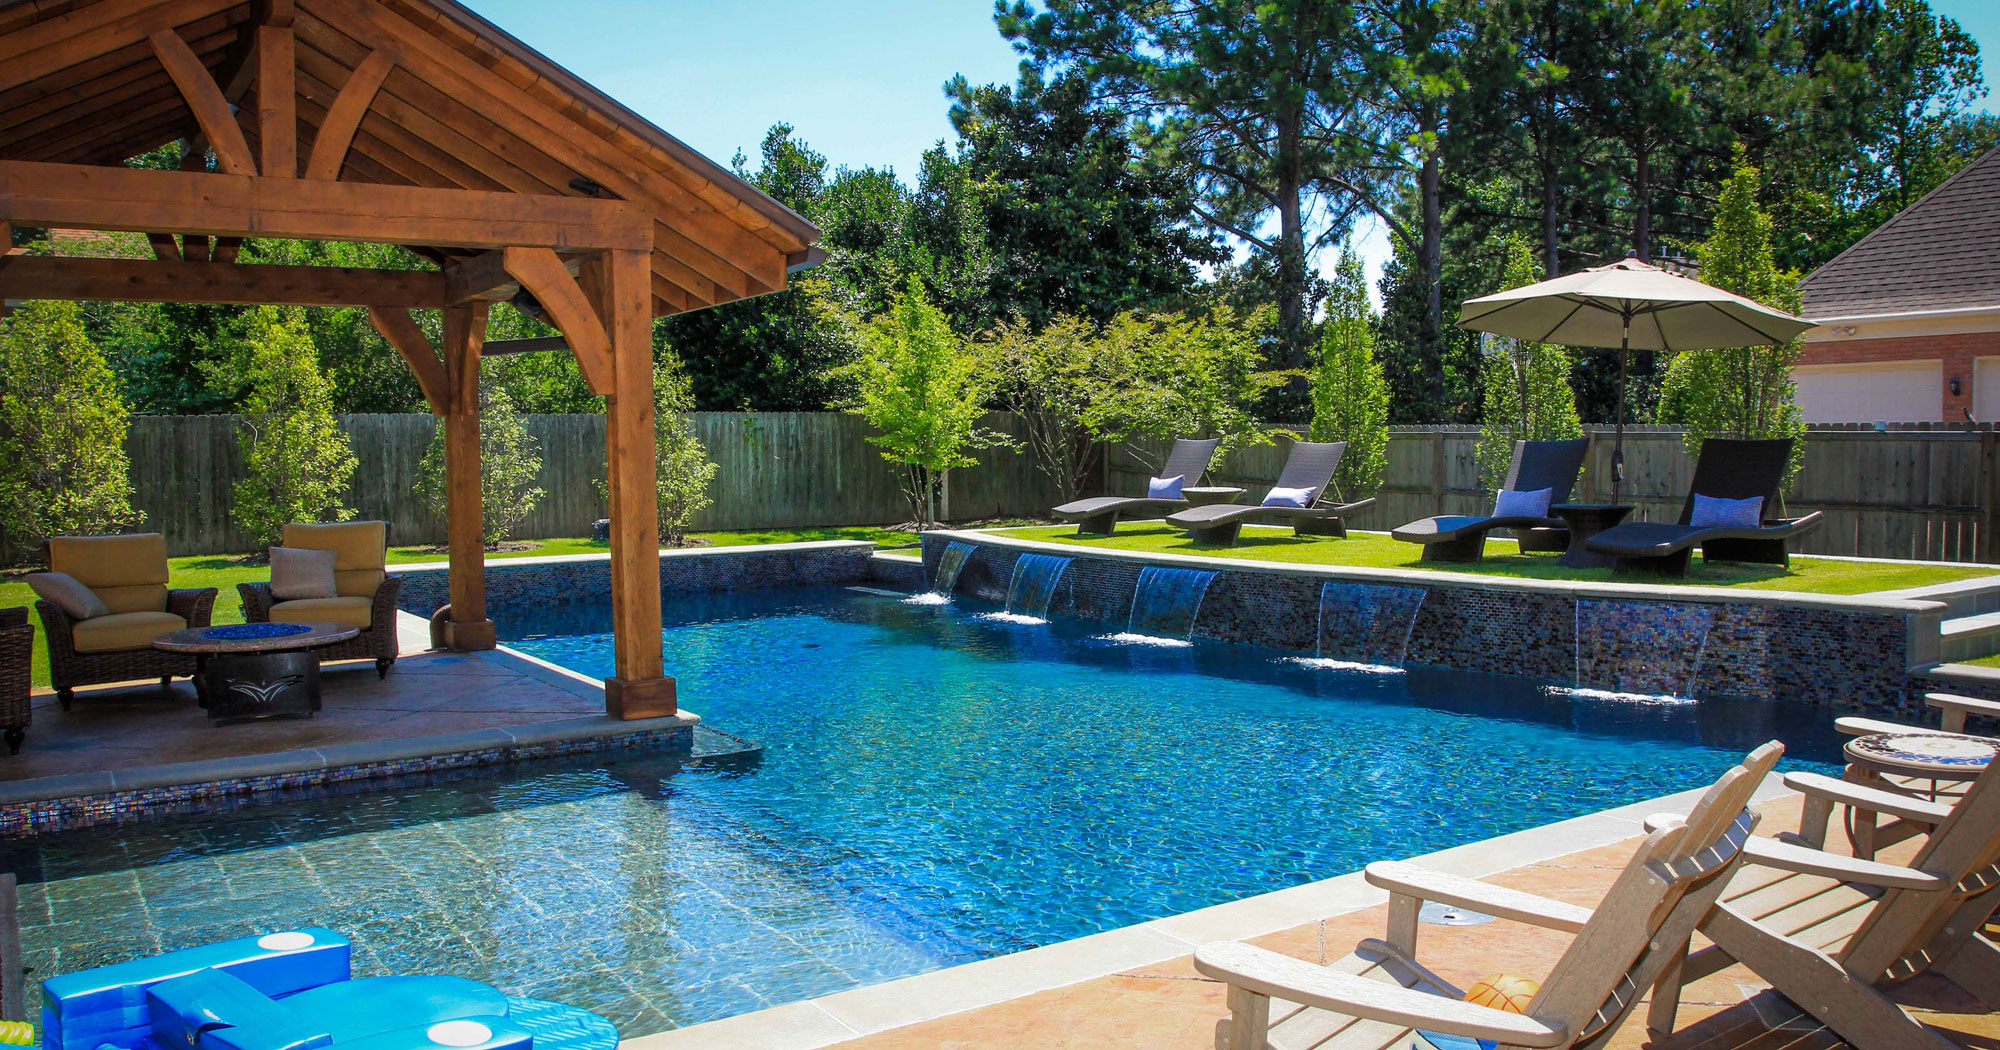 Beautiful Backyards Without Pools 20 Backyard Pool Ideas For The Wealthy Homeowner  - PATIO DESIGN AND YARD